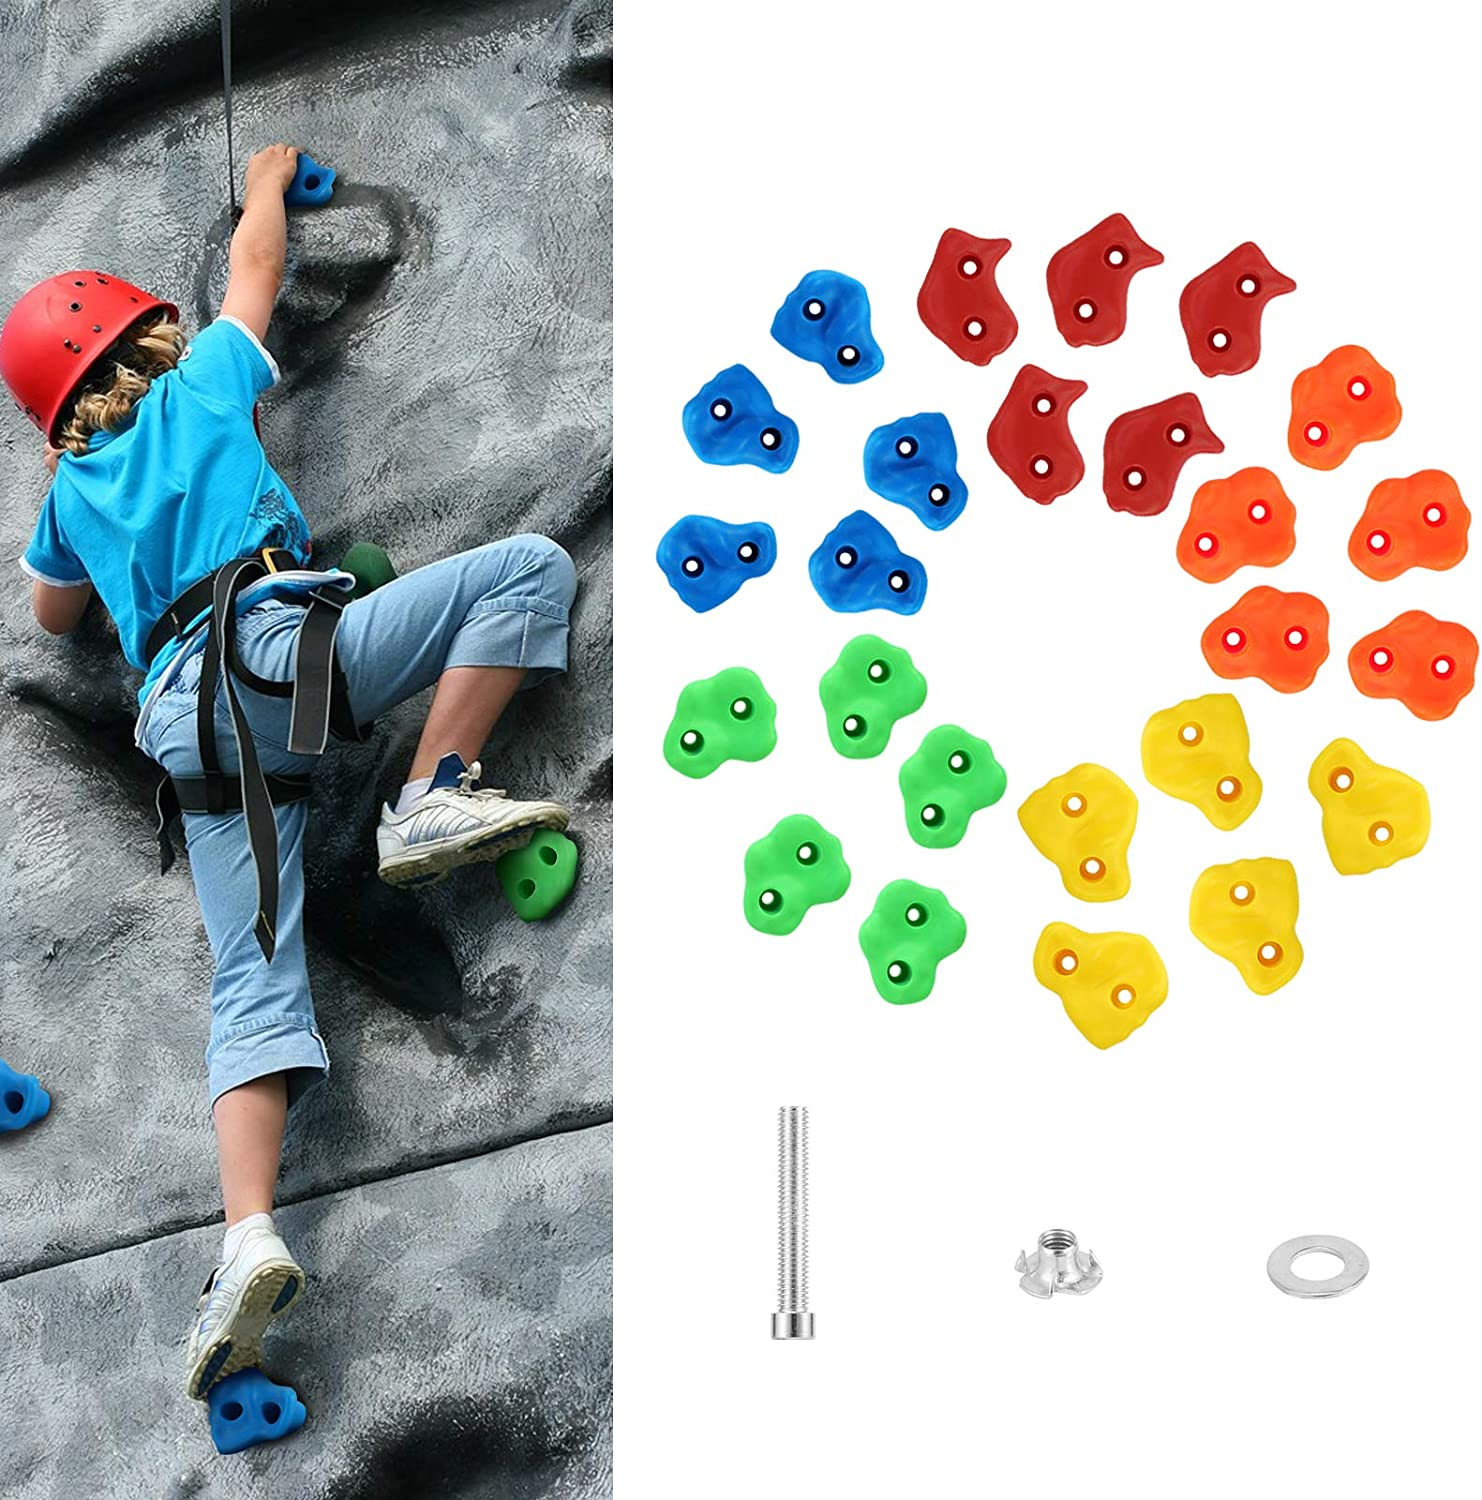 MoKo Rock Climbing Holds for Kids, 25 Pack Children Rock Climbing Holds for Backyard Outdoor Indoor Home Playground DIY Climbing Wall Grip Kits, Rock Wall Holds with Mounting Screws, Colorful